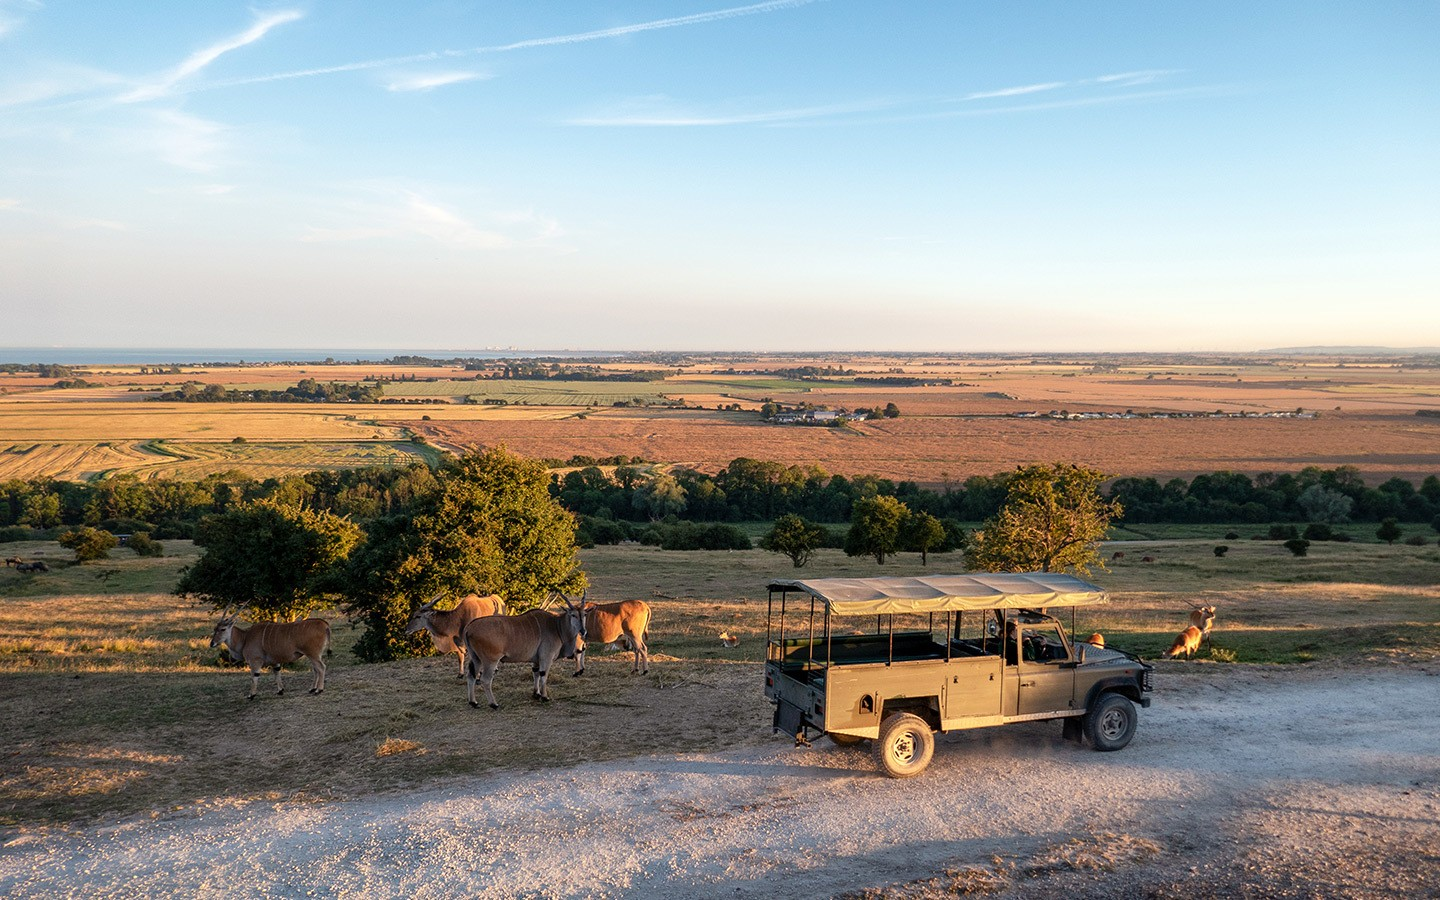 Safari in the UK: A stay at Port Lympne's Giraffe Lodge